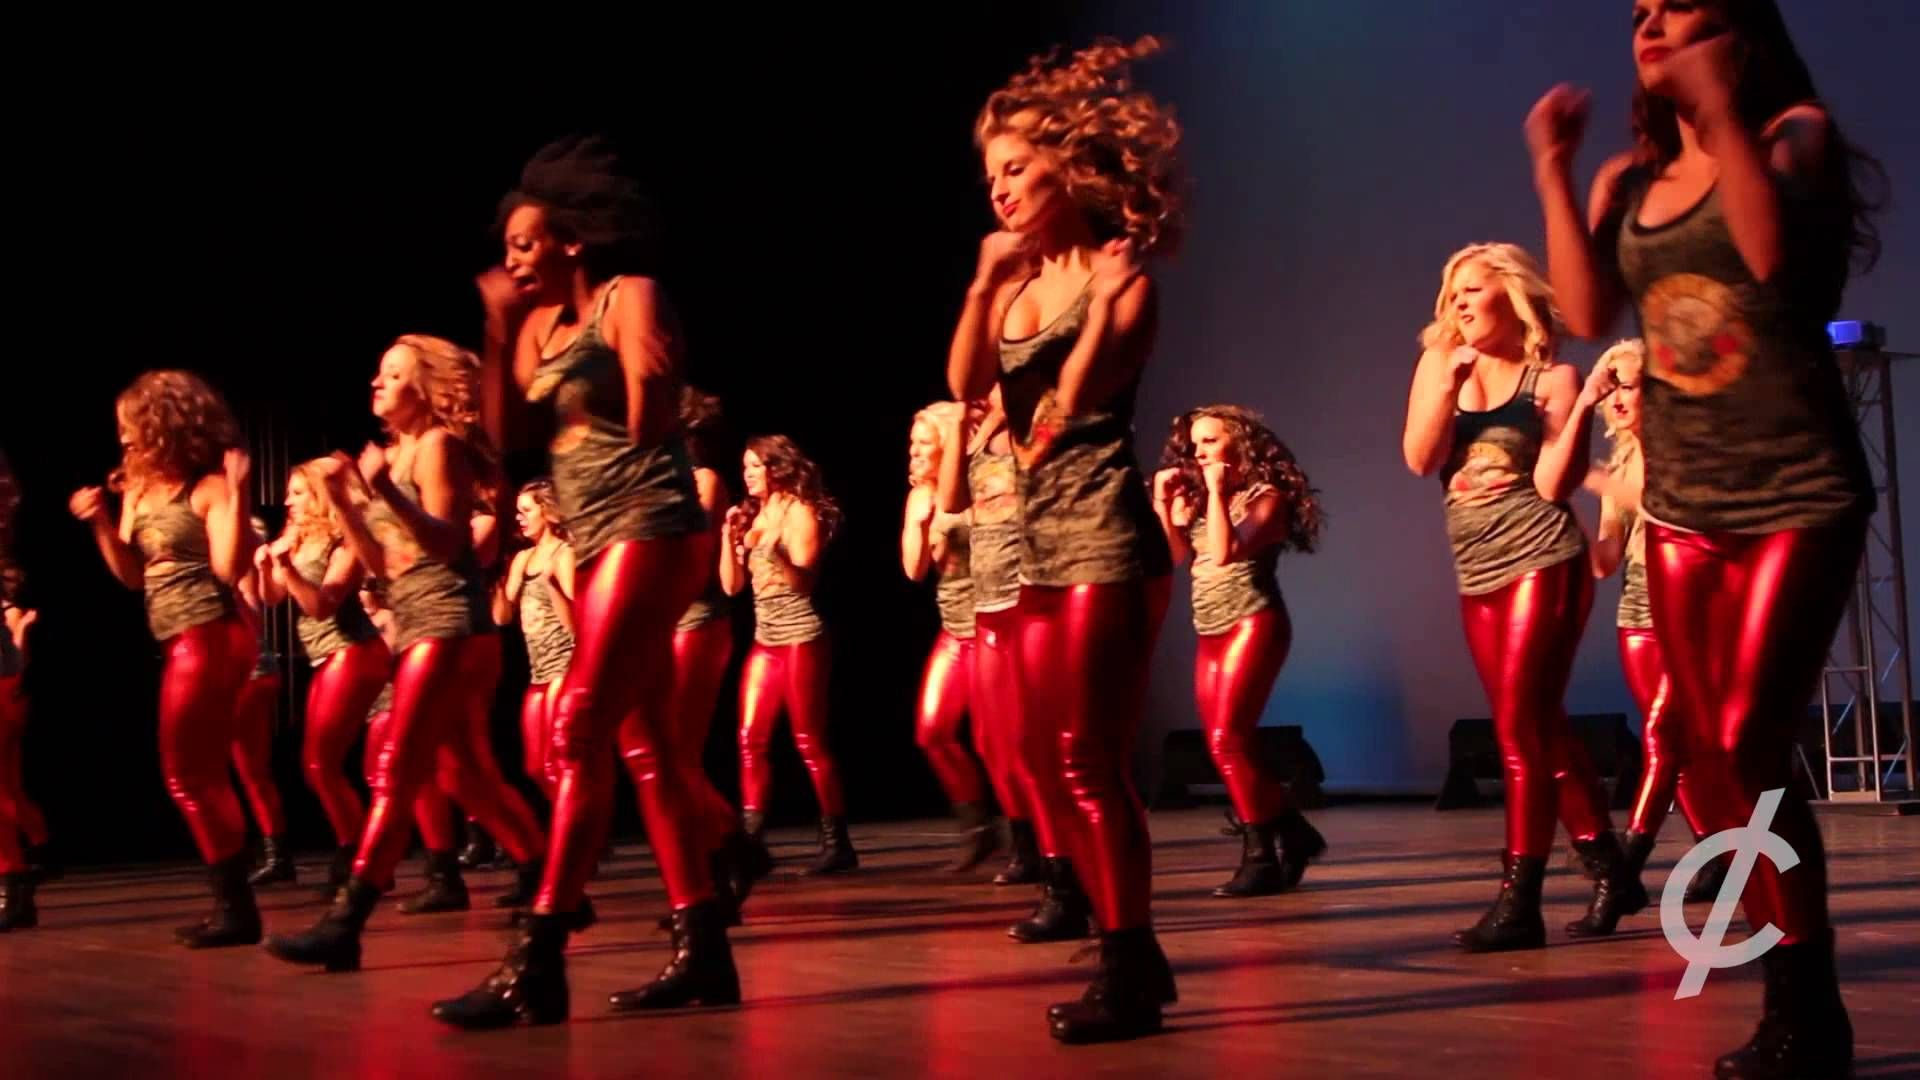 step show 80s theme   themes   Pinterest   80s theme, Watches and 80